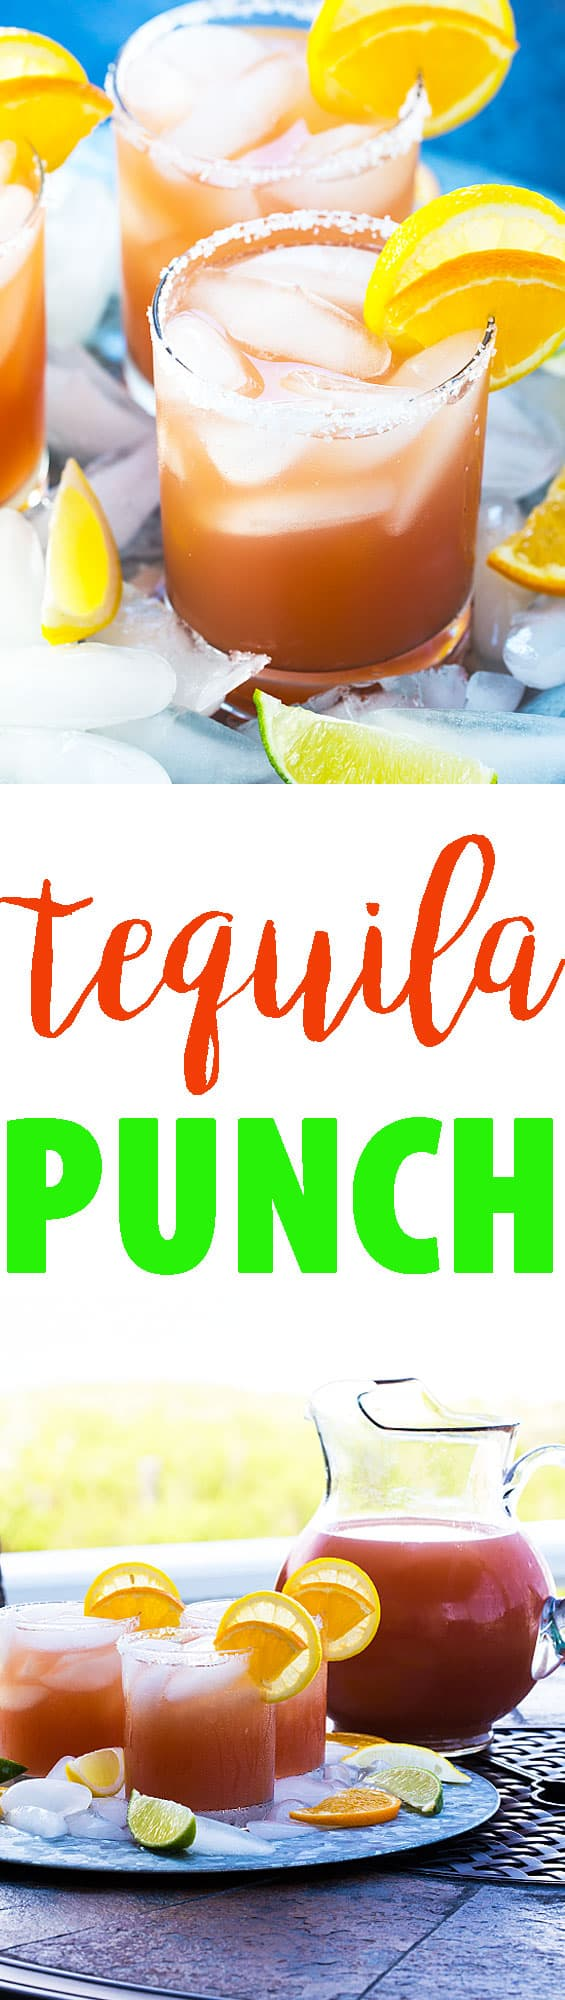 A two image vertical collage of tequila punch with overlay text in the center.